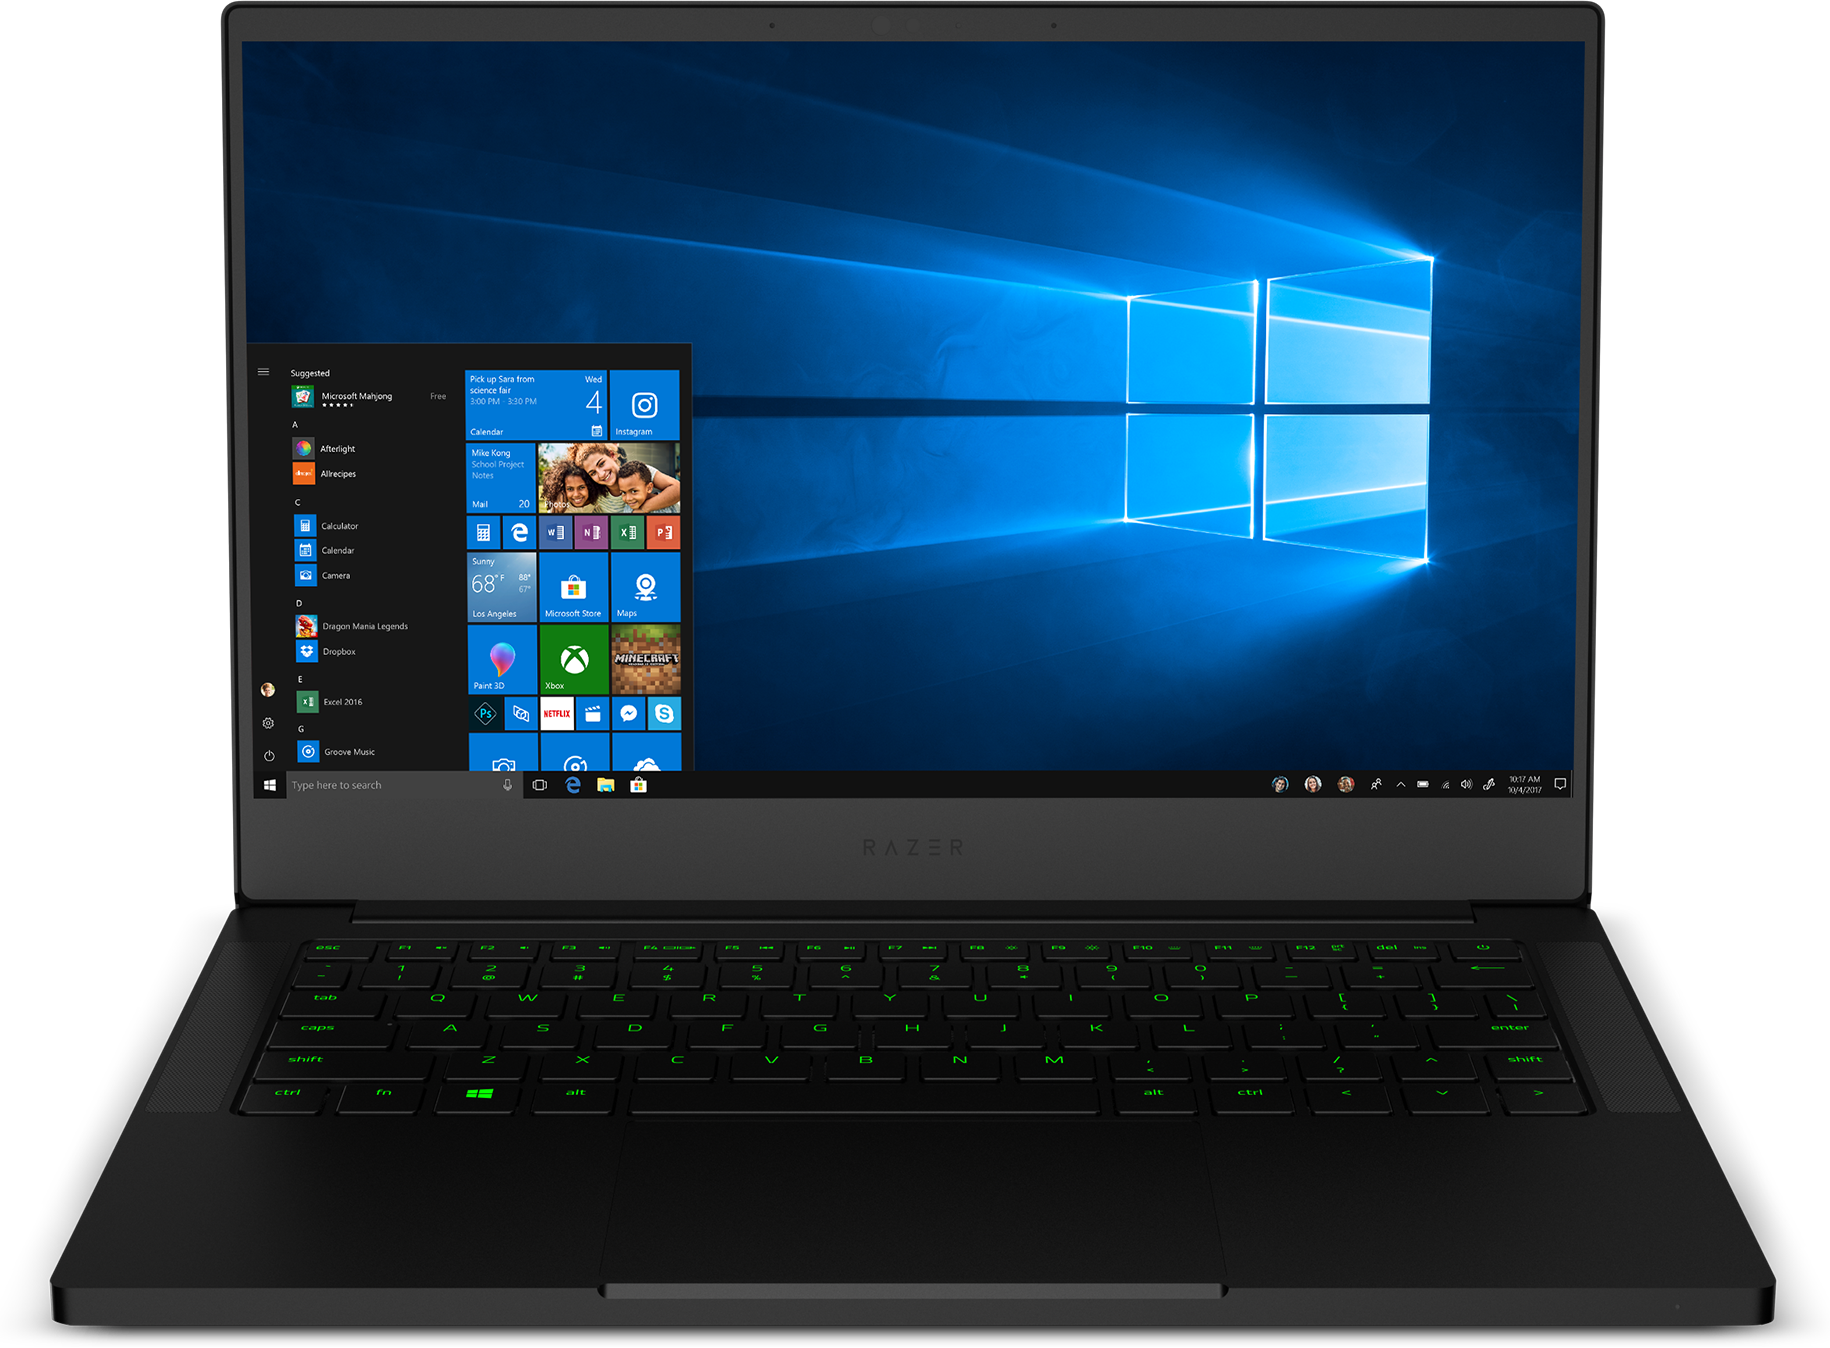 Front view of the Razer Blade Stealth RZ09